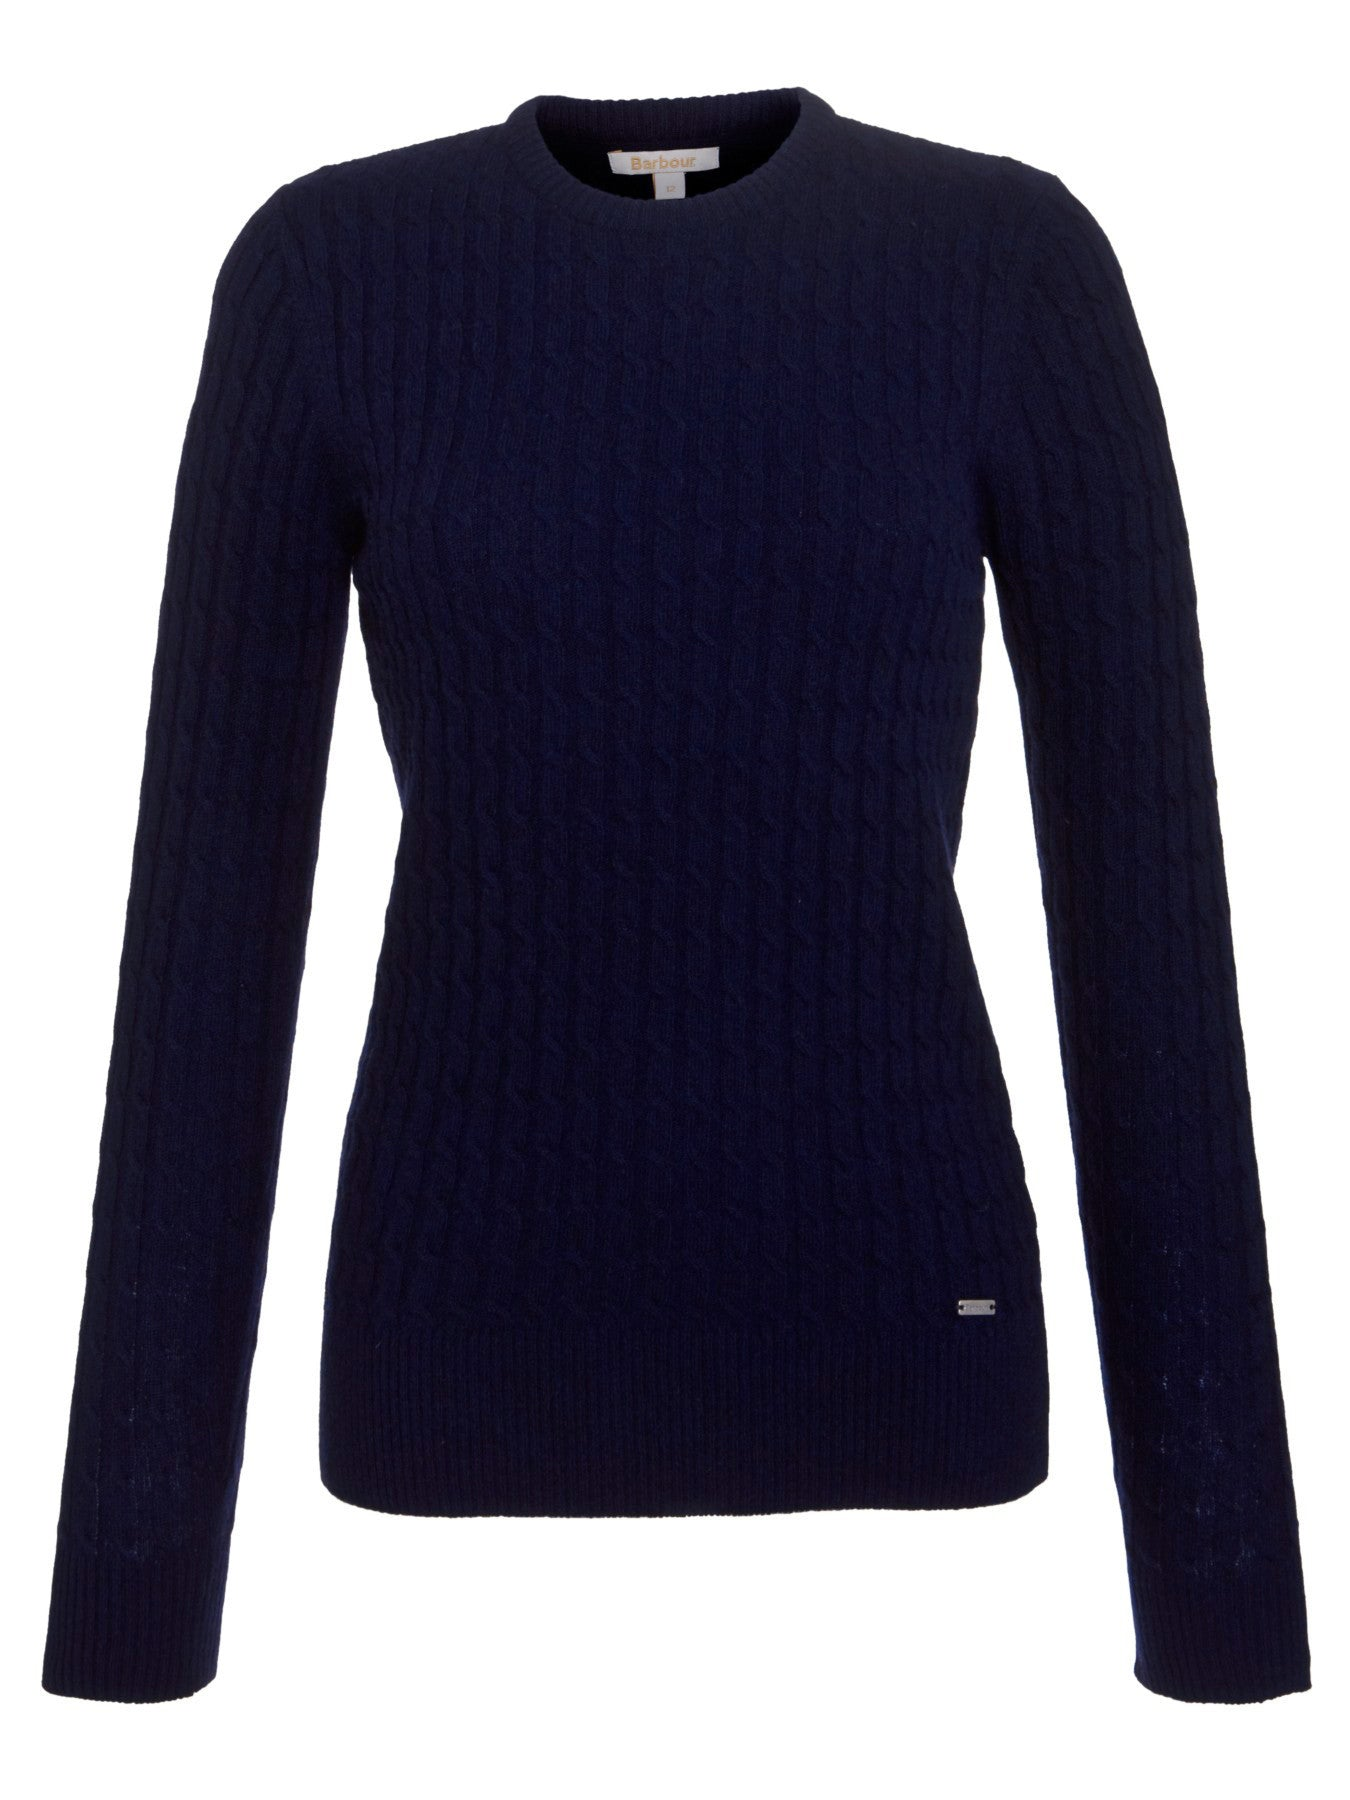 Barbour Langdale Crew Sweater - North Shore Saddlery